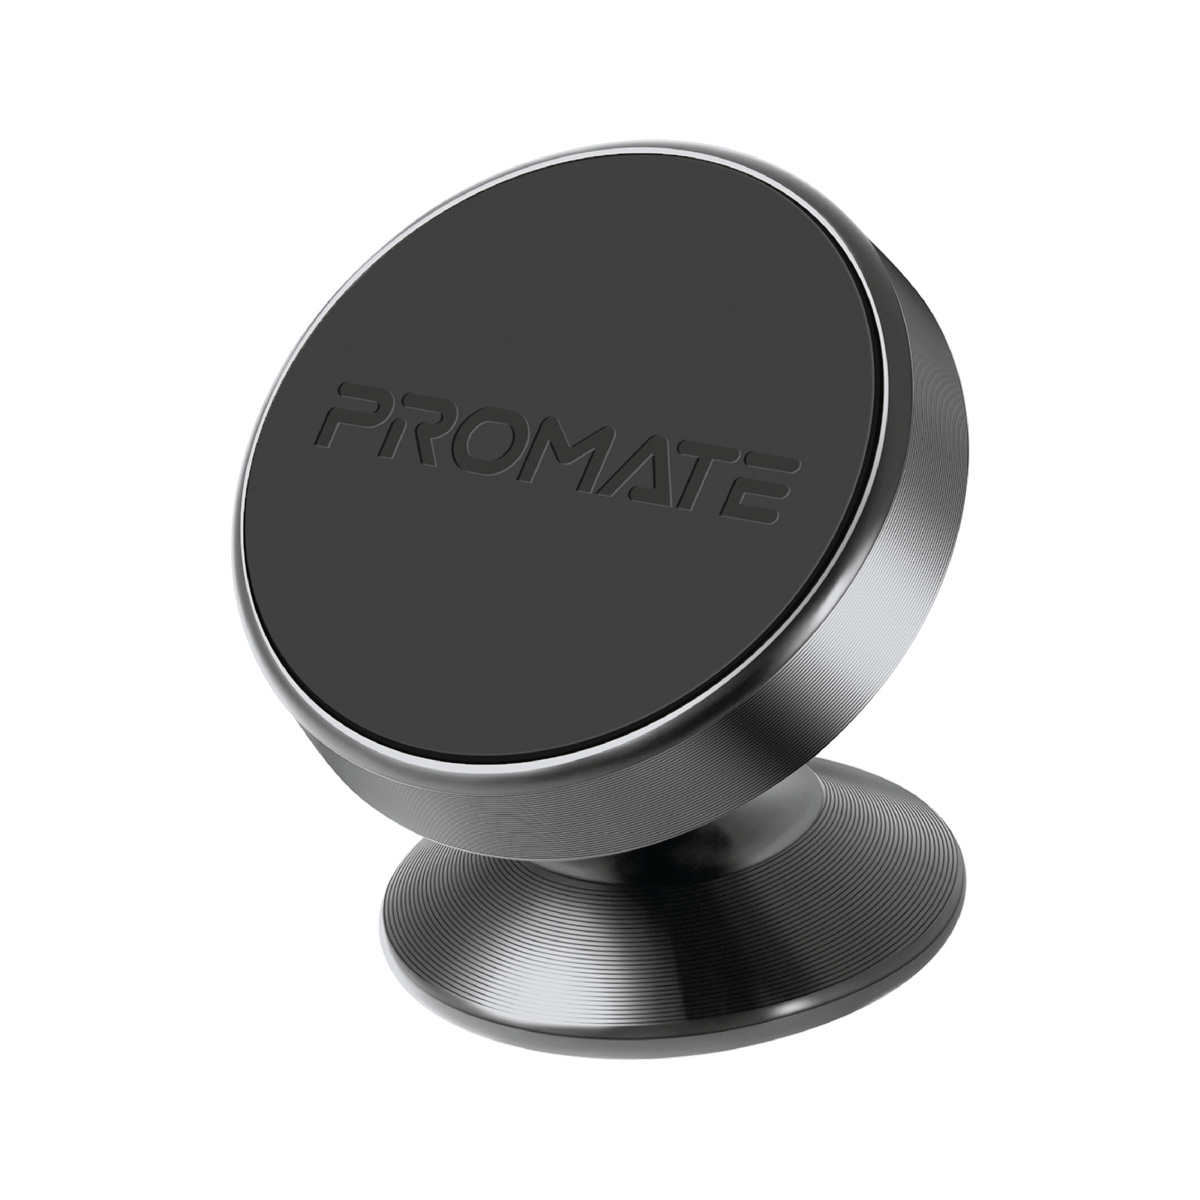 Promate Magnetic Car Phone Holder, Multi-Angle 360 Degree Metallic Magnetic Car Phone Mount with Anti-Slip Surface, Anti- Distraction Design and Fast Swift-Snap Technology for Smartphones, Tablets, GPS, Magnetto-2 Grey